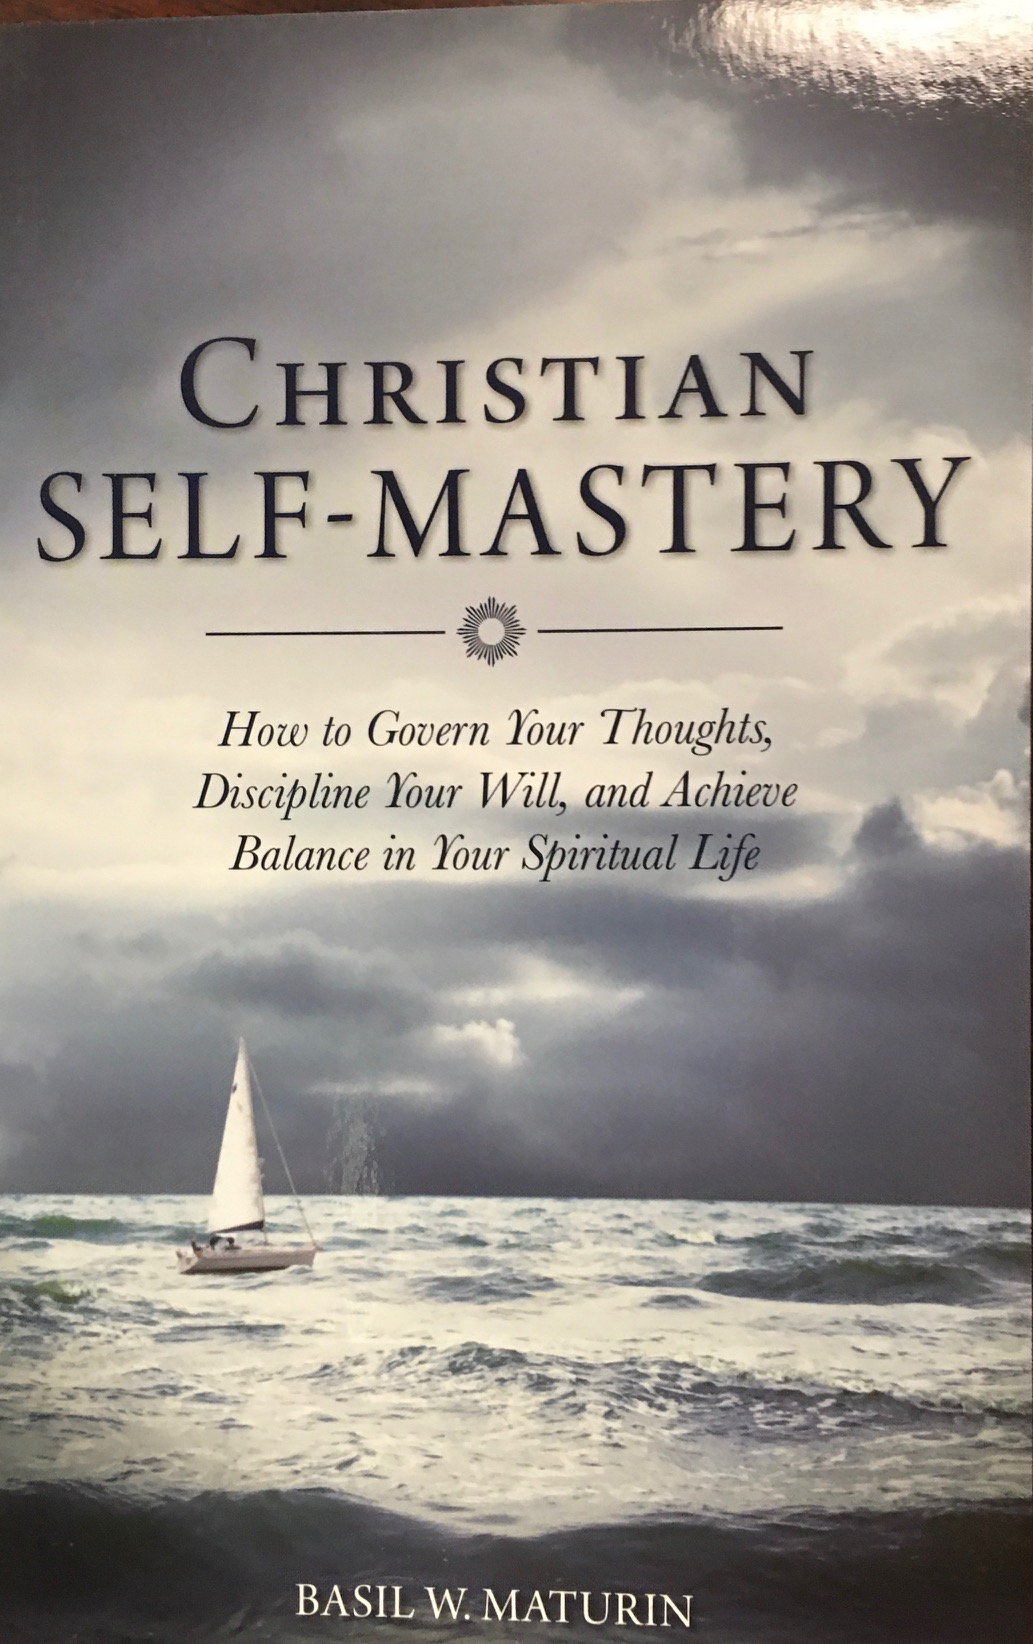 Image for Christian Self-Mastery: How to Govern Your Thoughts, Discipline Your Will, and Achieve Balance in Your Spiritual Life